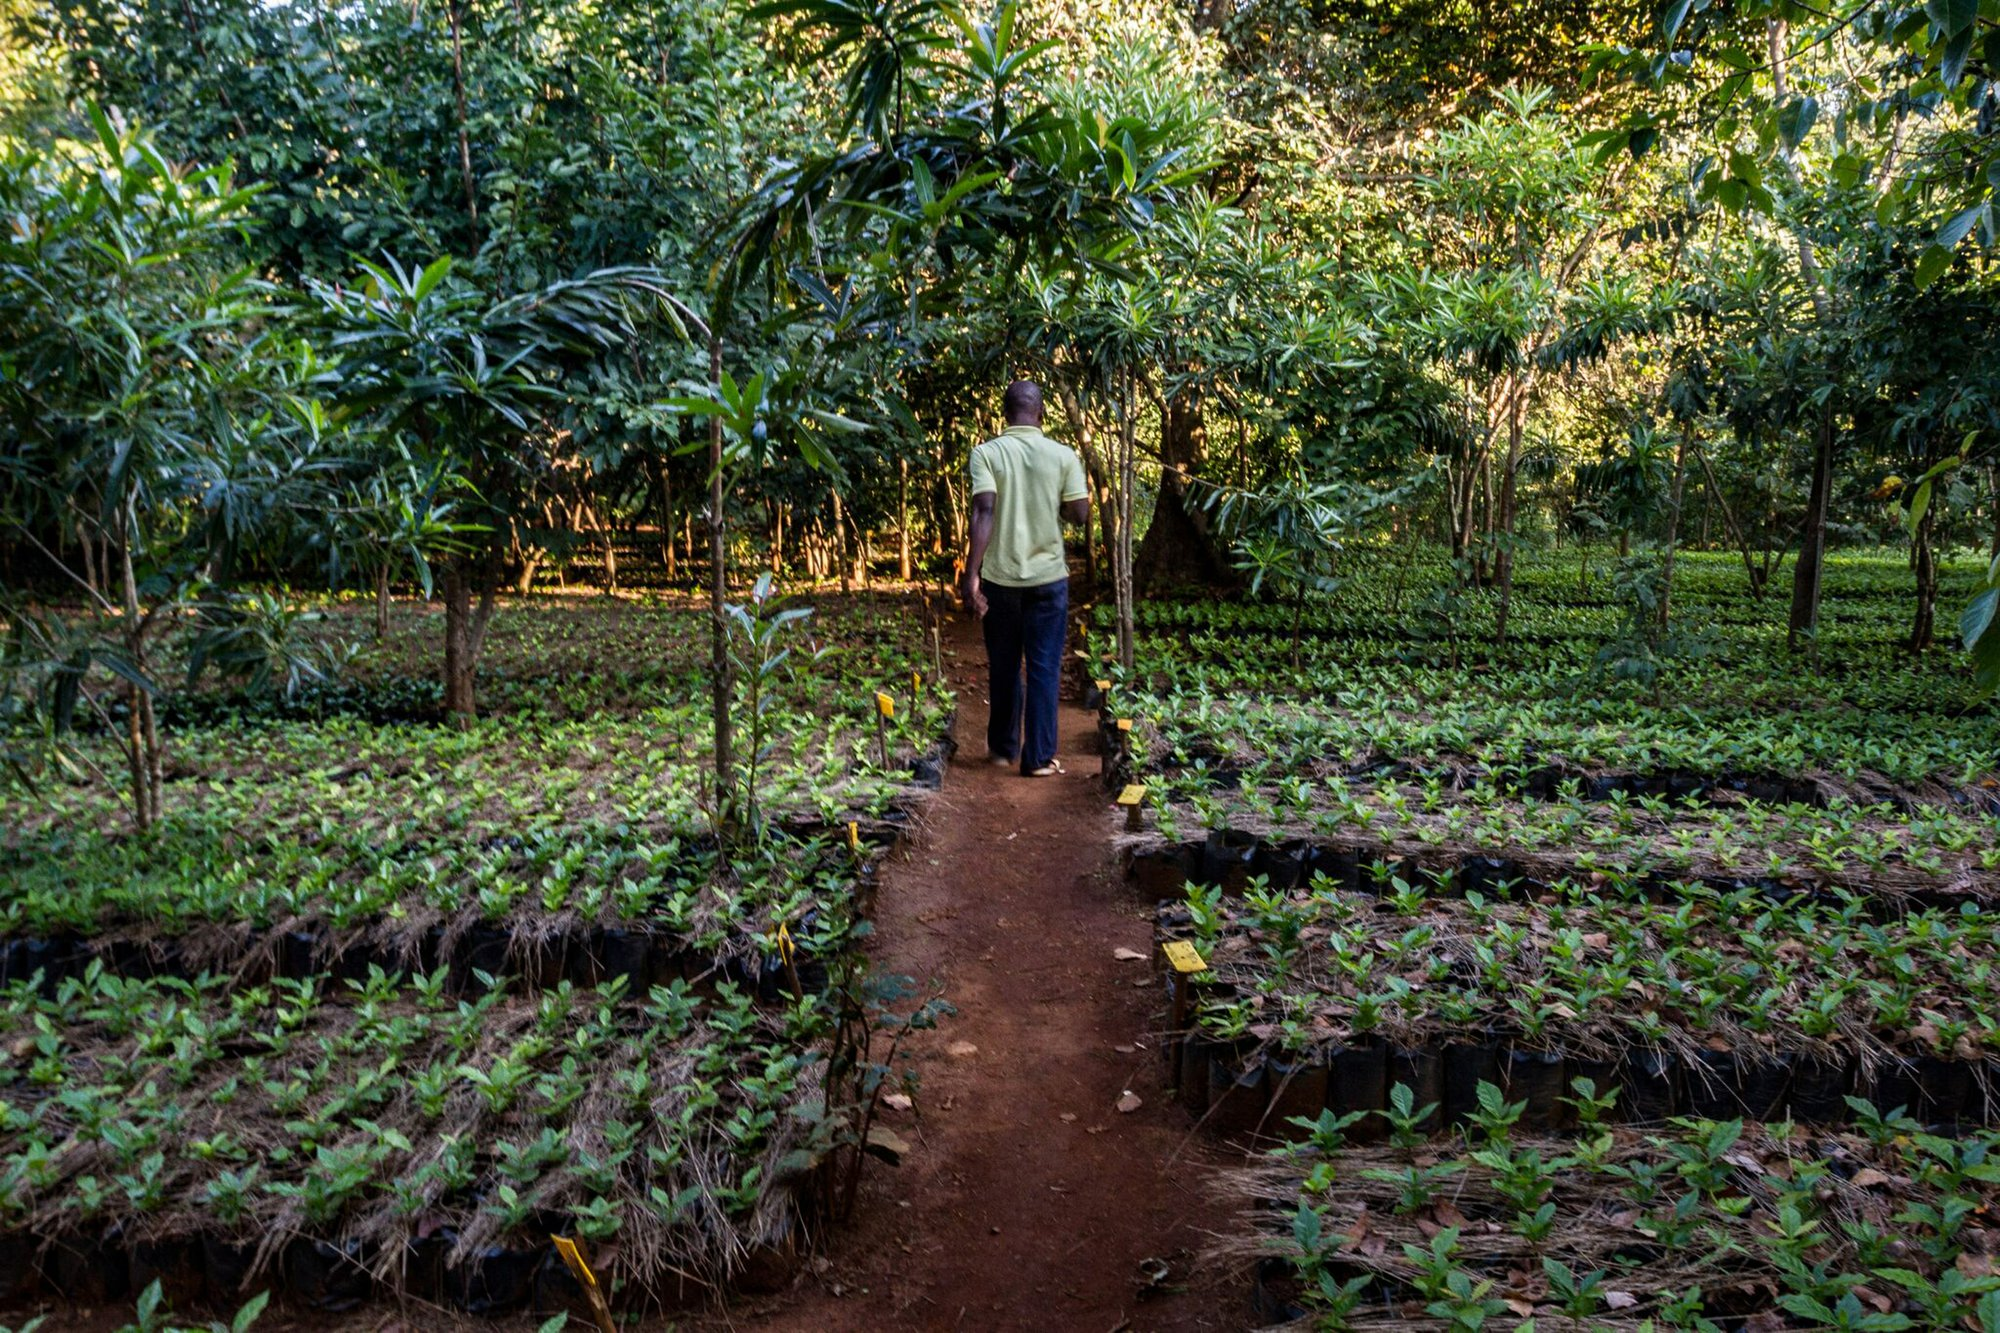 Photograph of a worker walking through a plant nursery with rows of young coffee plants.